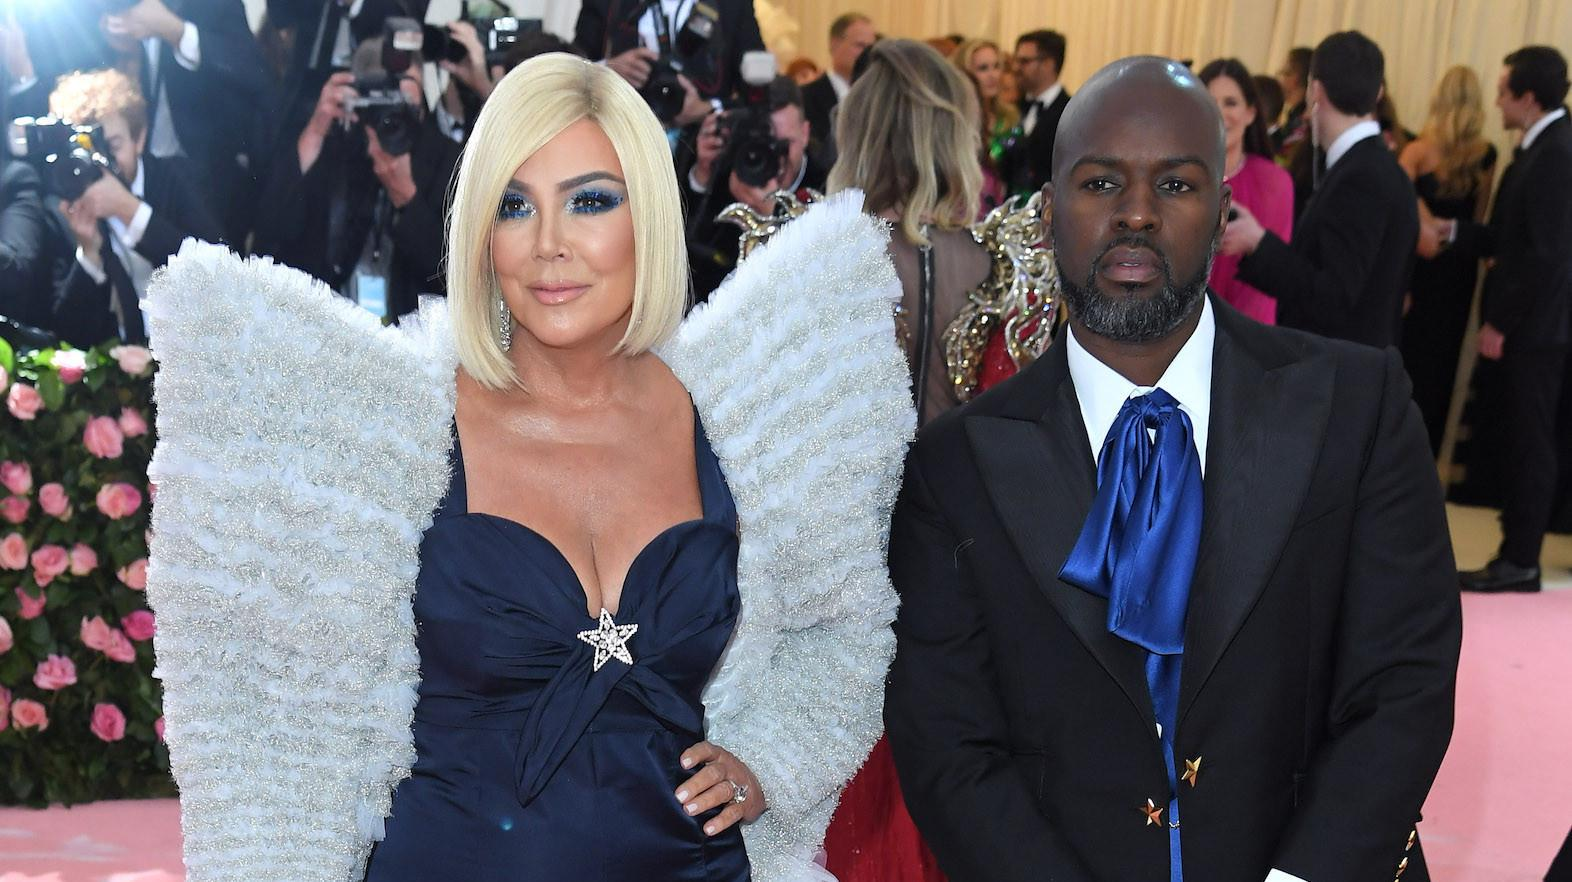 KUWK: Kylie Jenner And Momager Kris' Man Corey Gamble Grind Together During Night Out - Check Out The Vid!